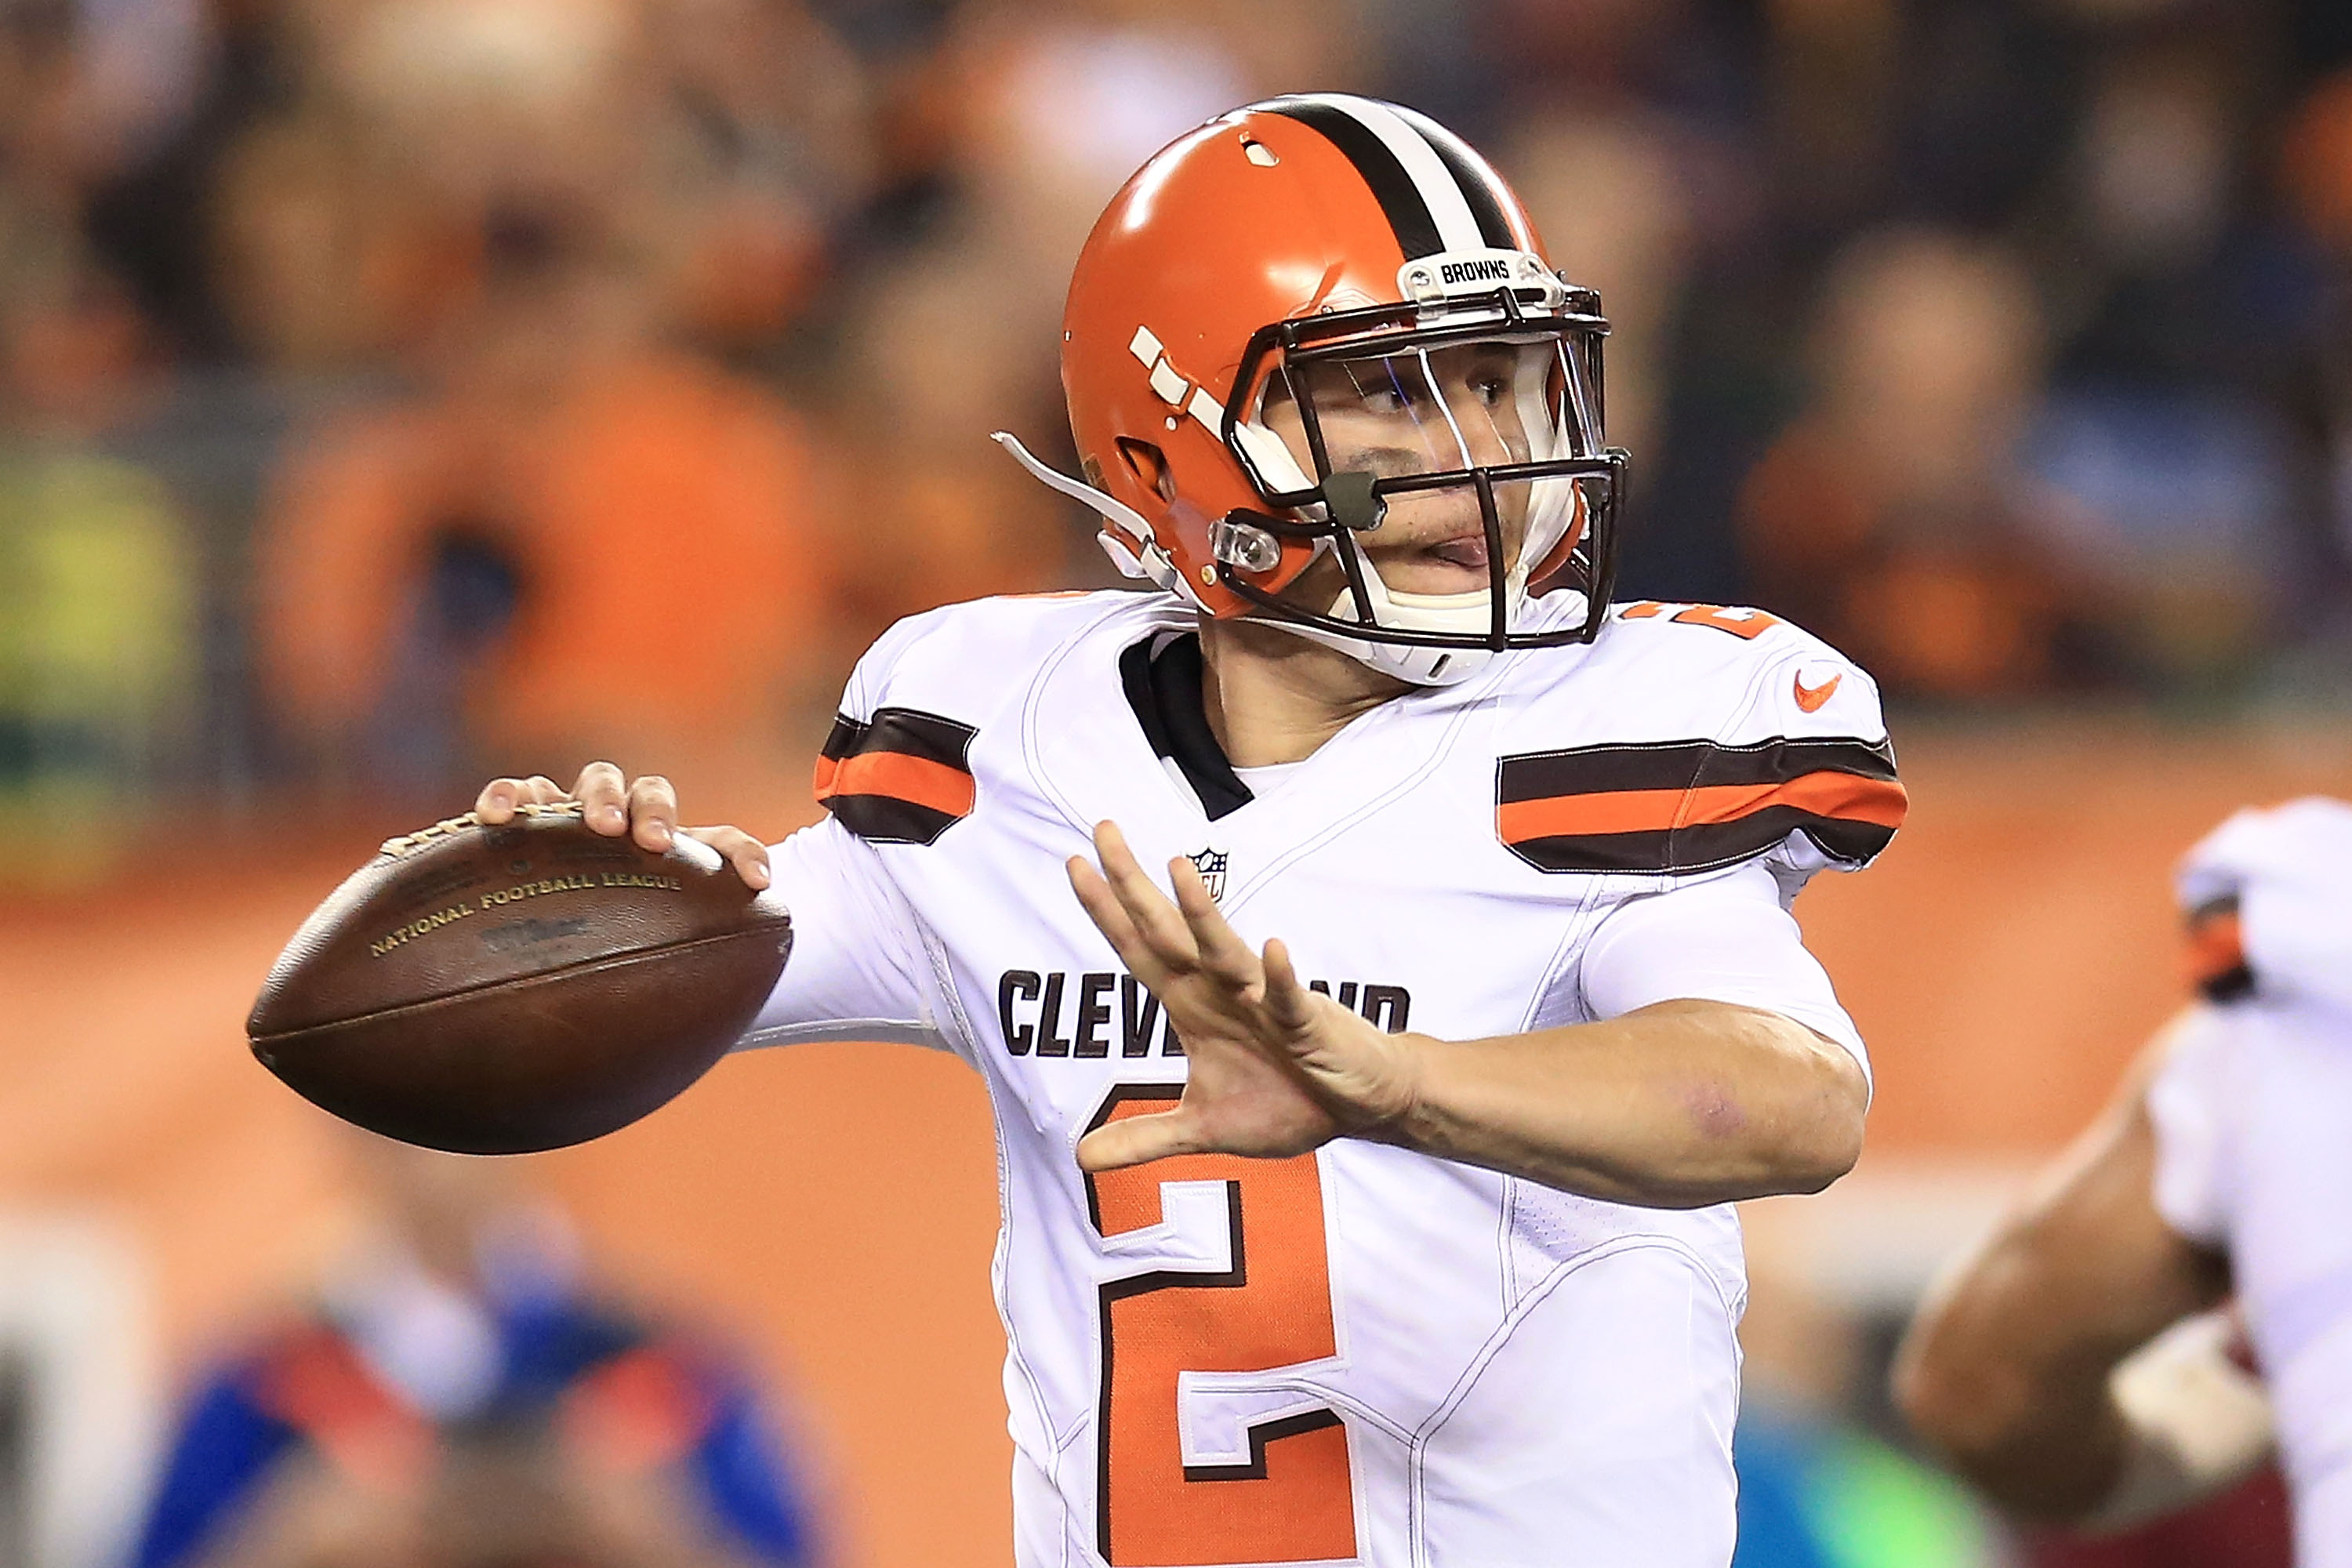 Johnny Manziel #2 of the Cleveland Browns (Photo by Andrew Weber/Getty Images)